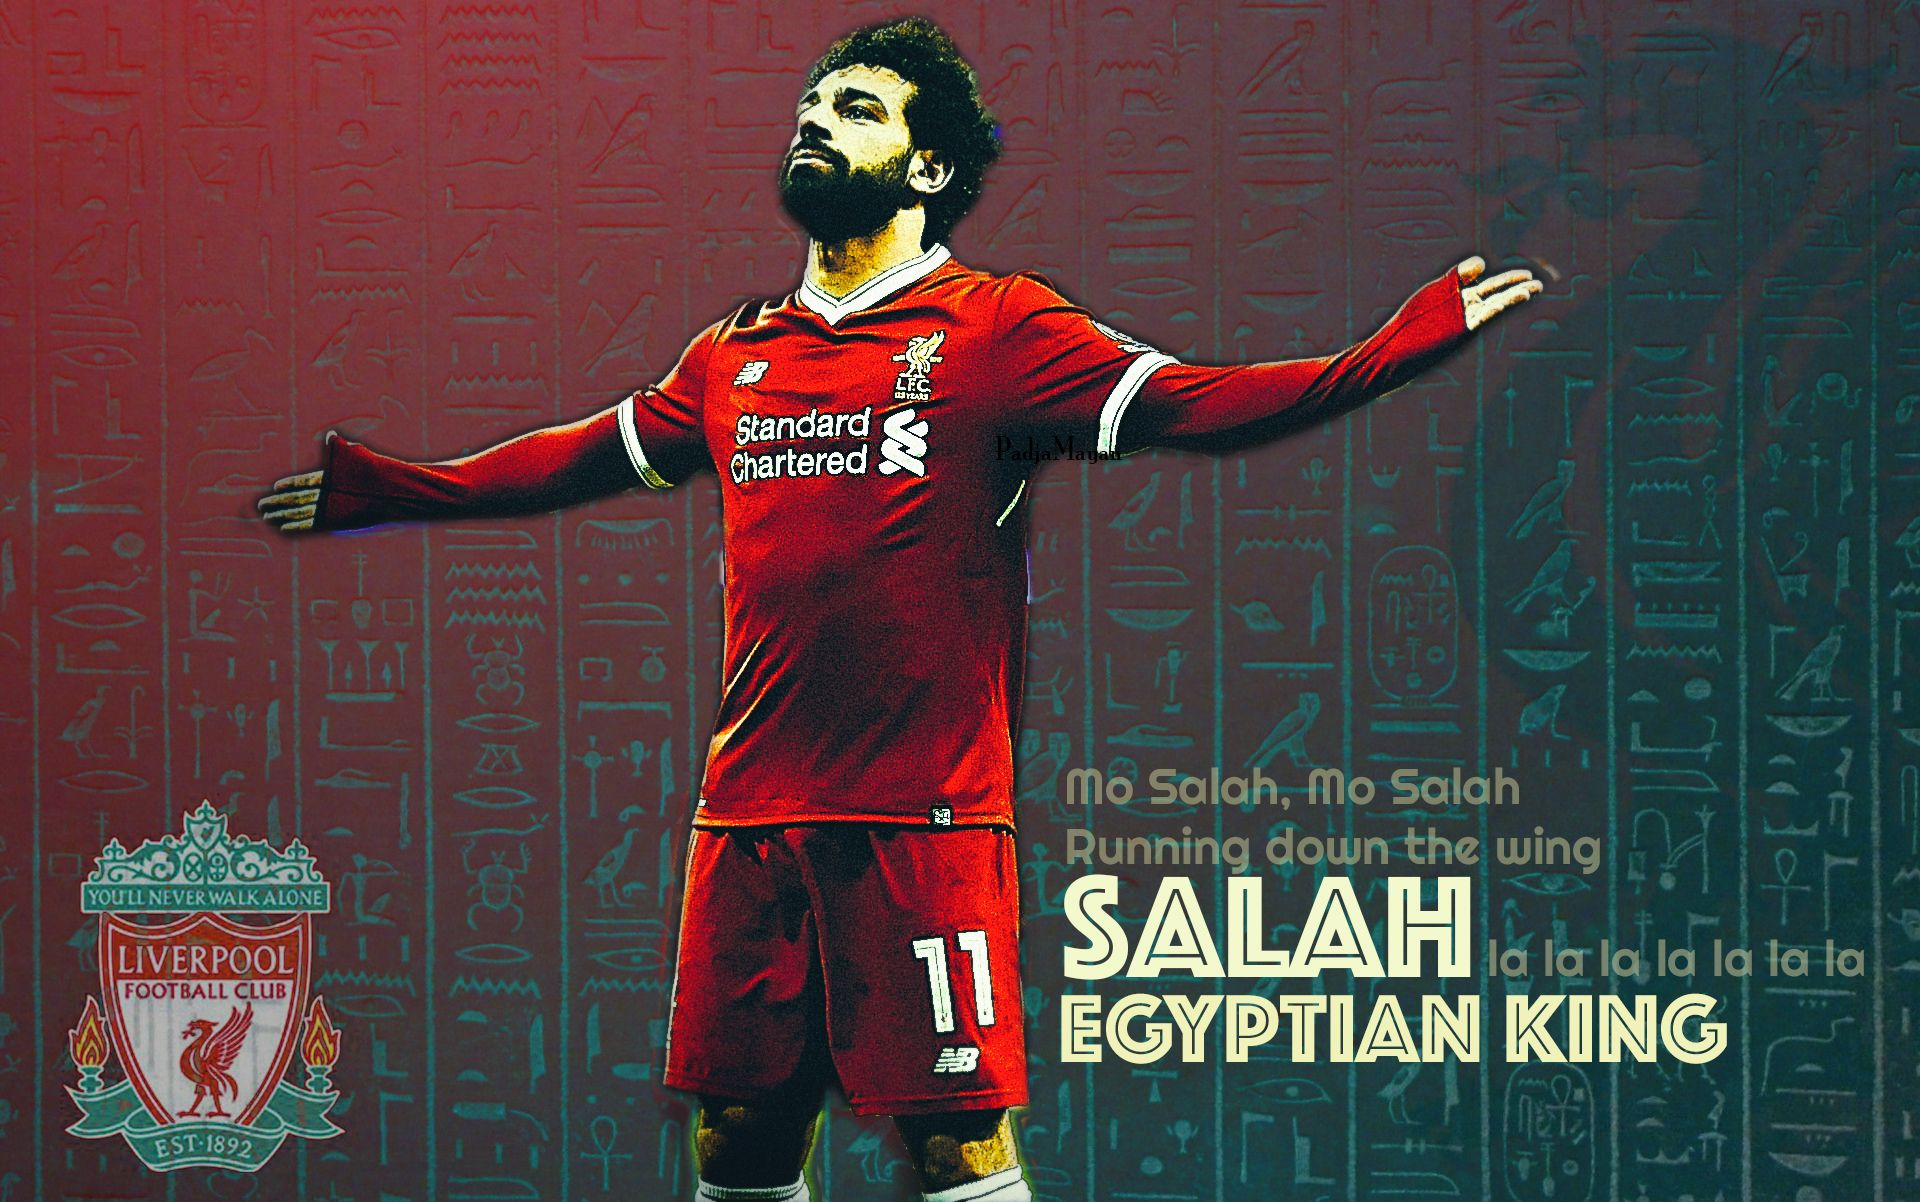 Mo Salah Wallpaper #Salah, #Liverpool